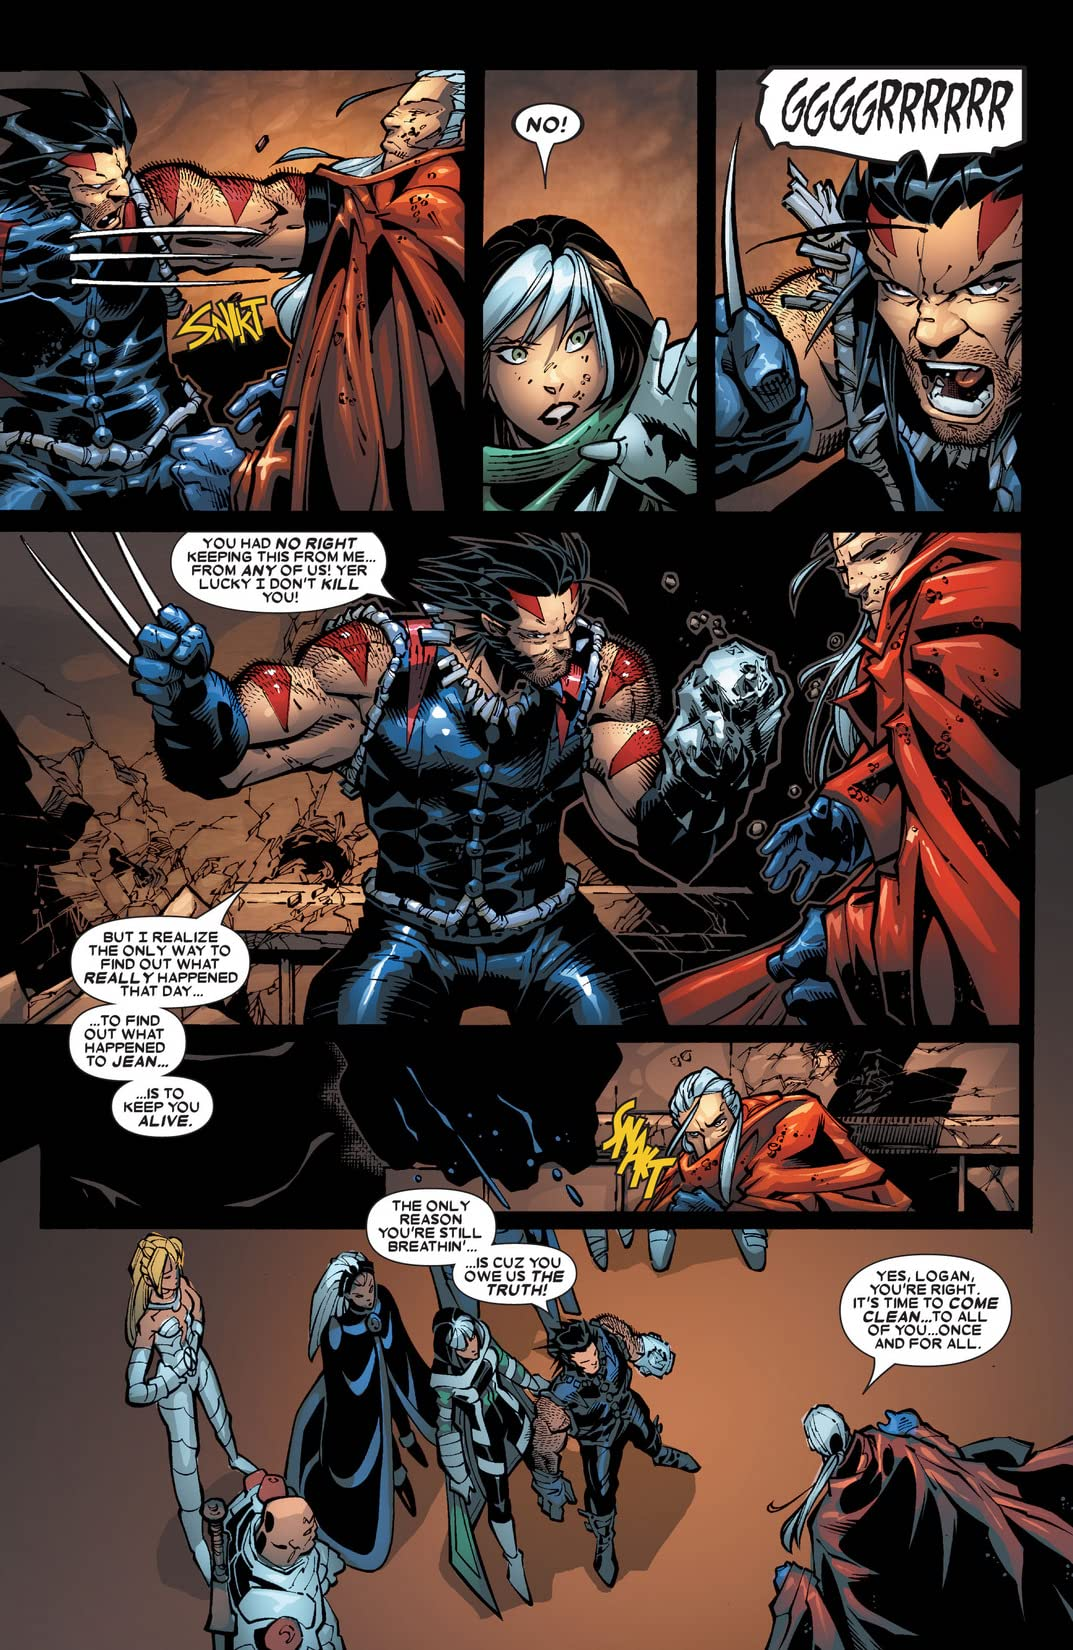 X-Men: Age of Apocalypse #5